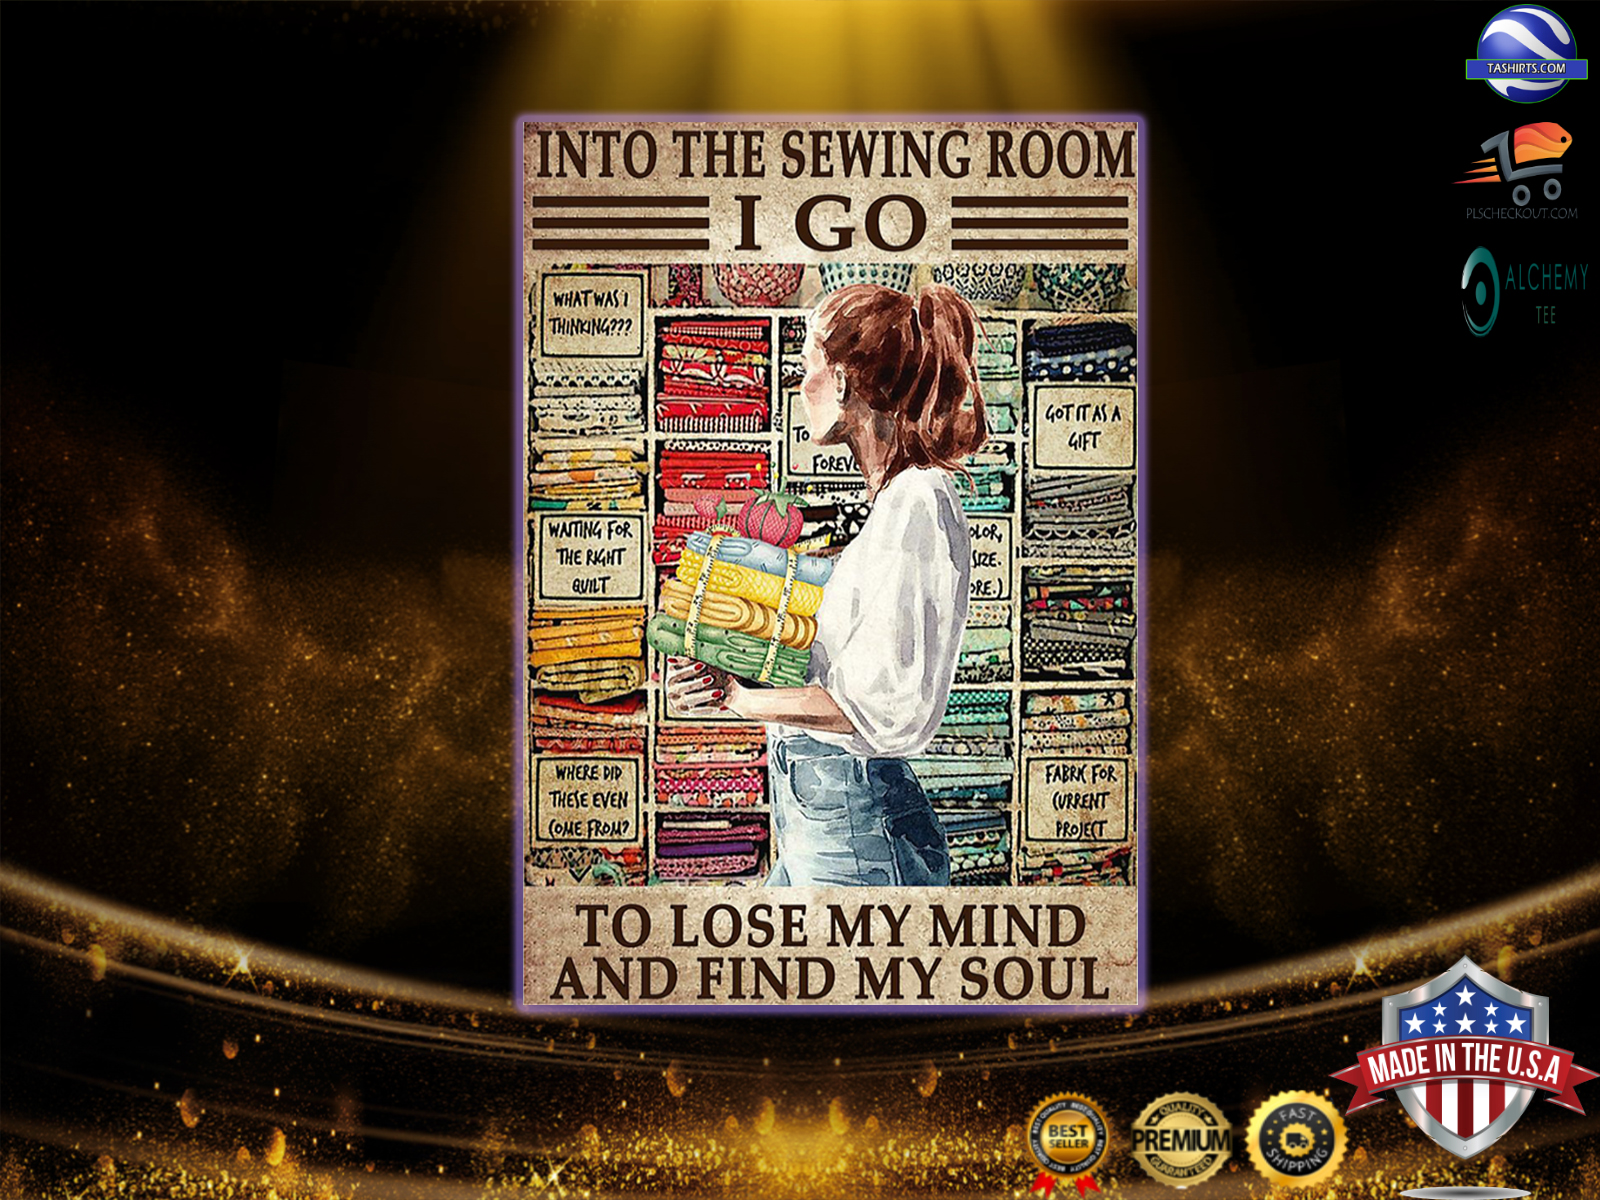 Into the sewing room I go to lose my mind poster